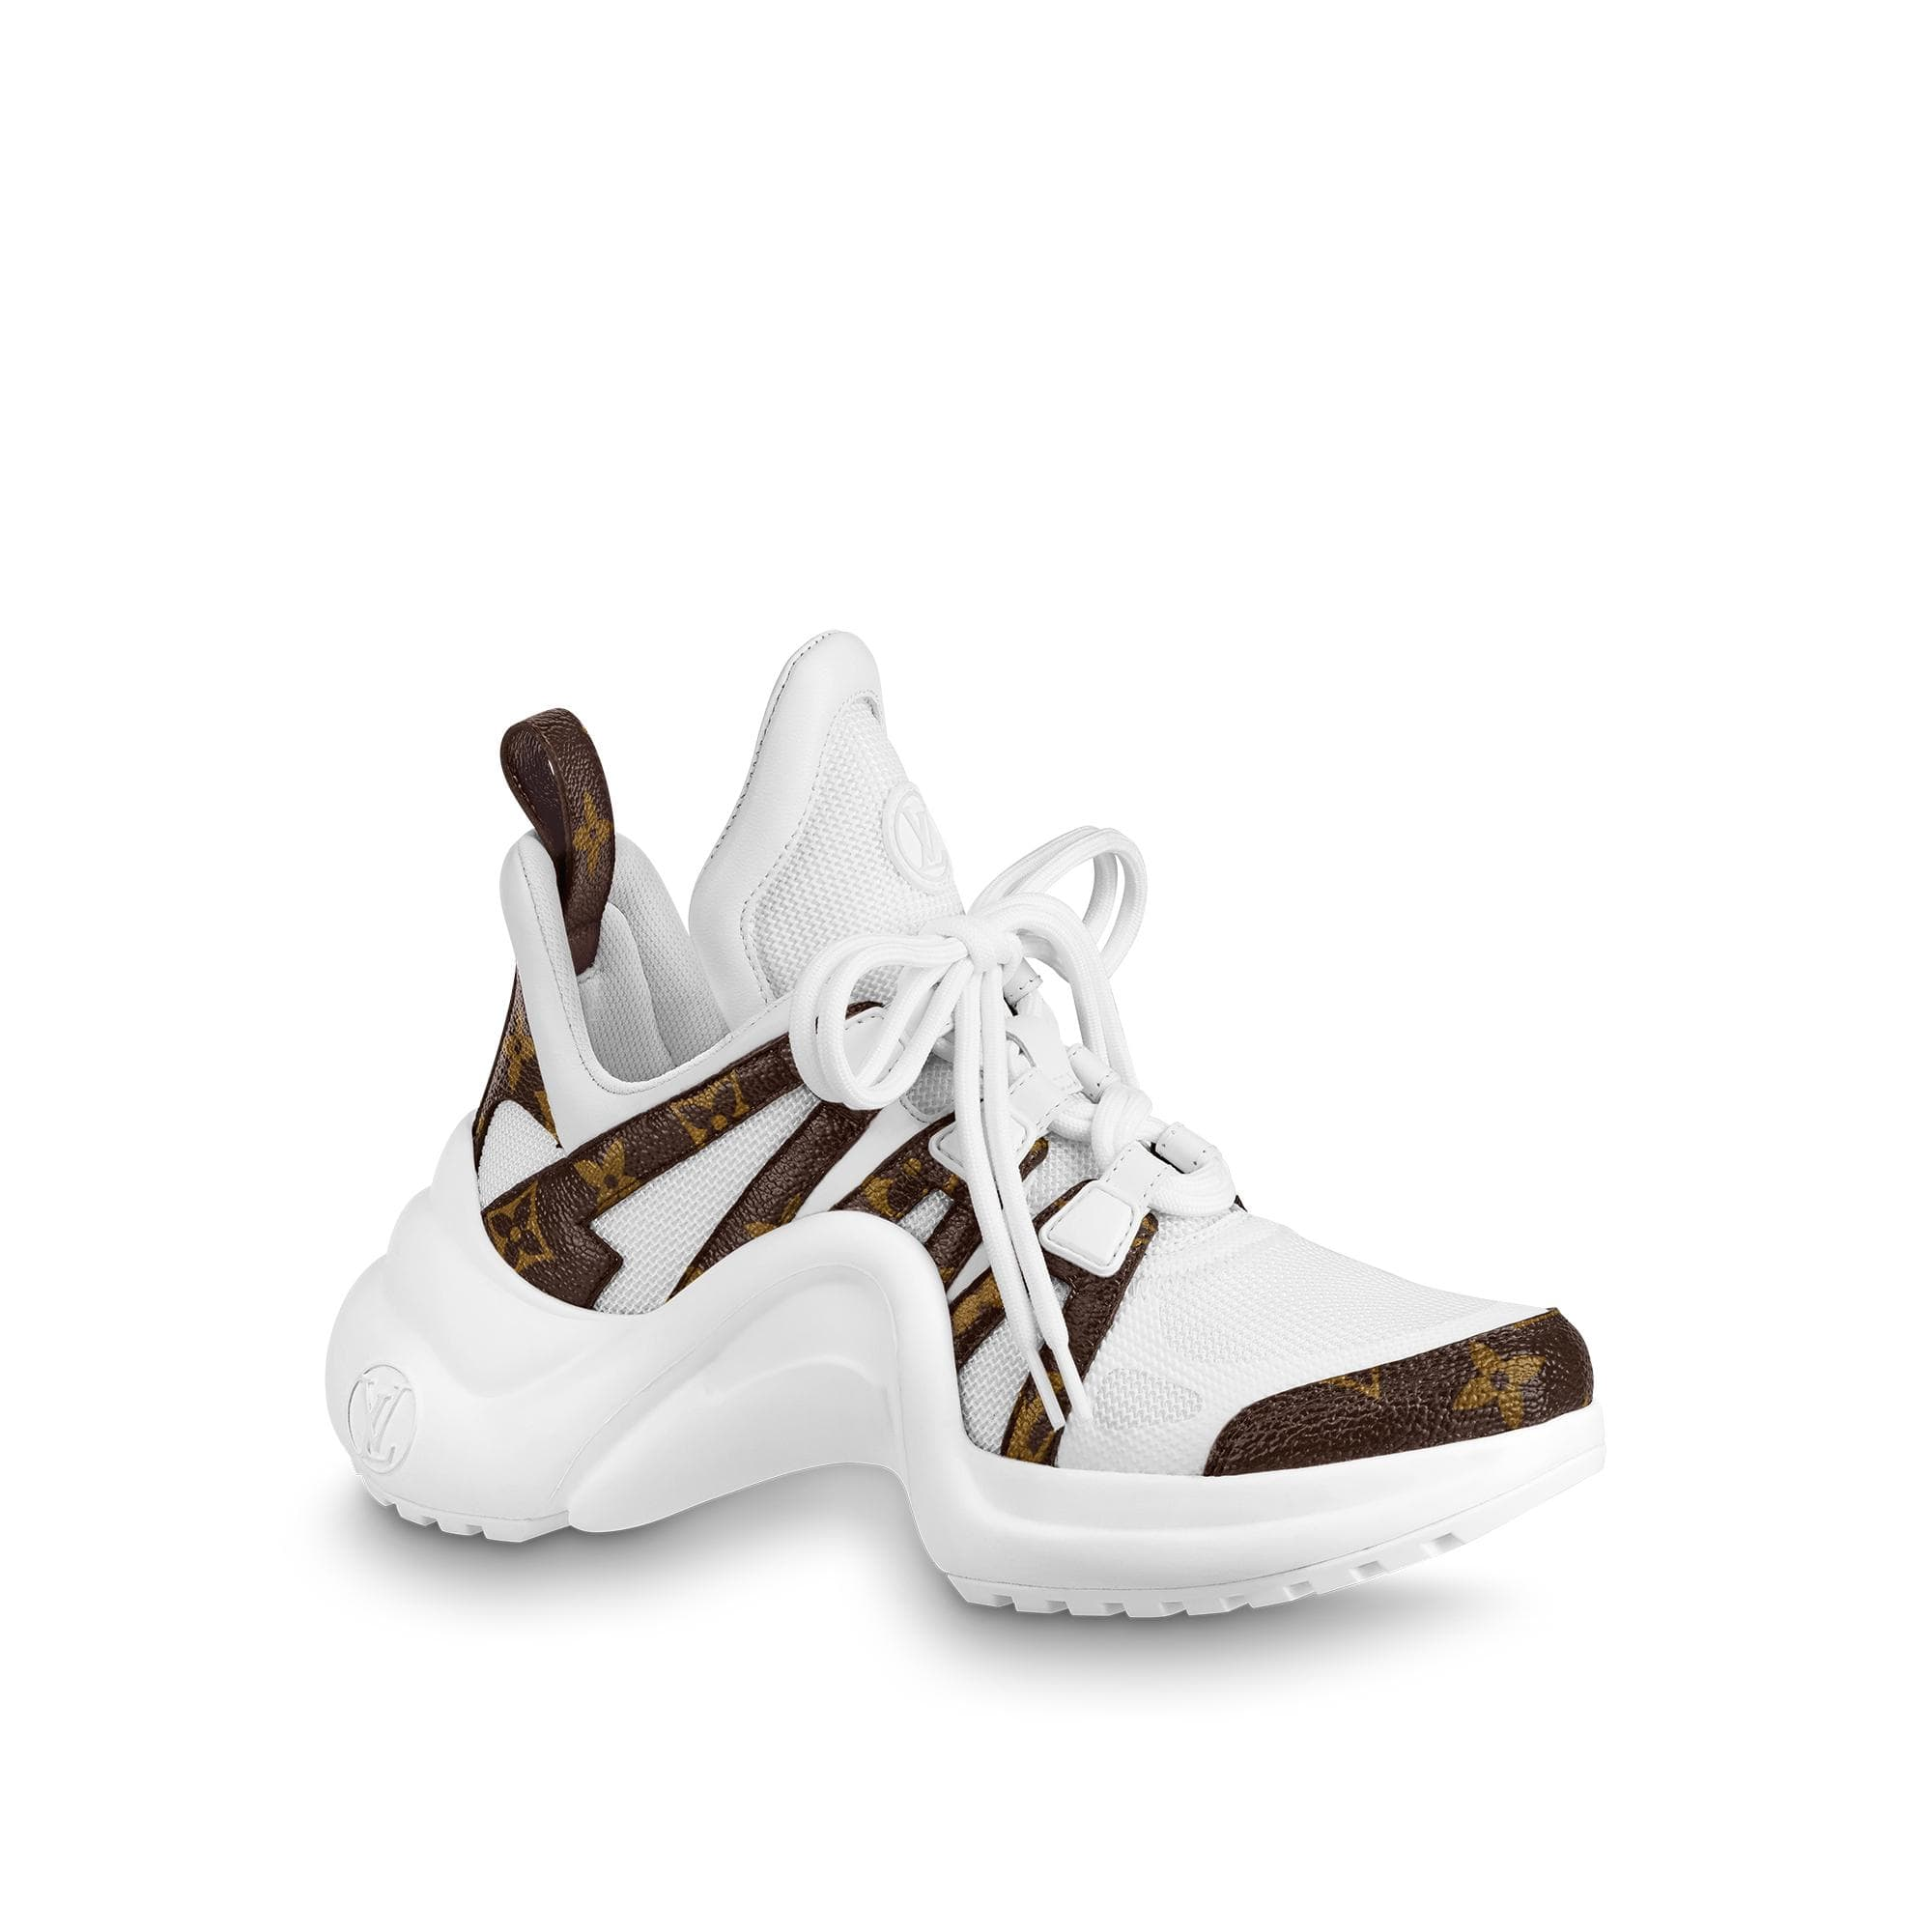 louis-vuitton-sneaker-lv-archlight-calzature--AE5U6BSL01_PM2_Front view